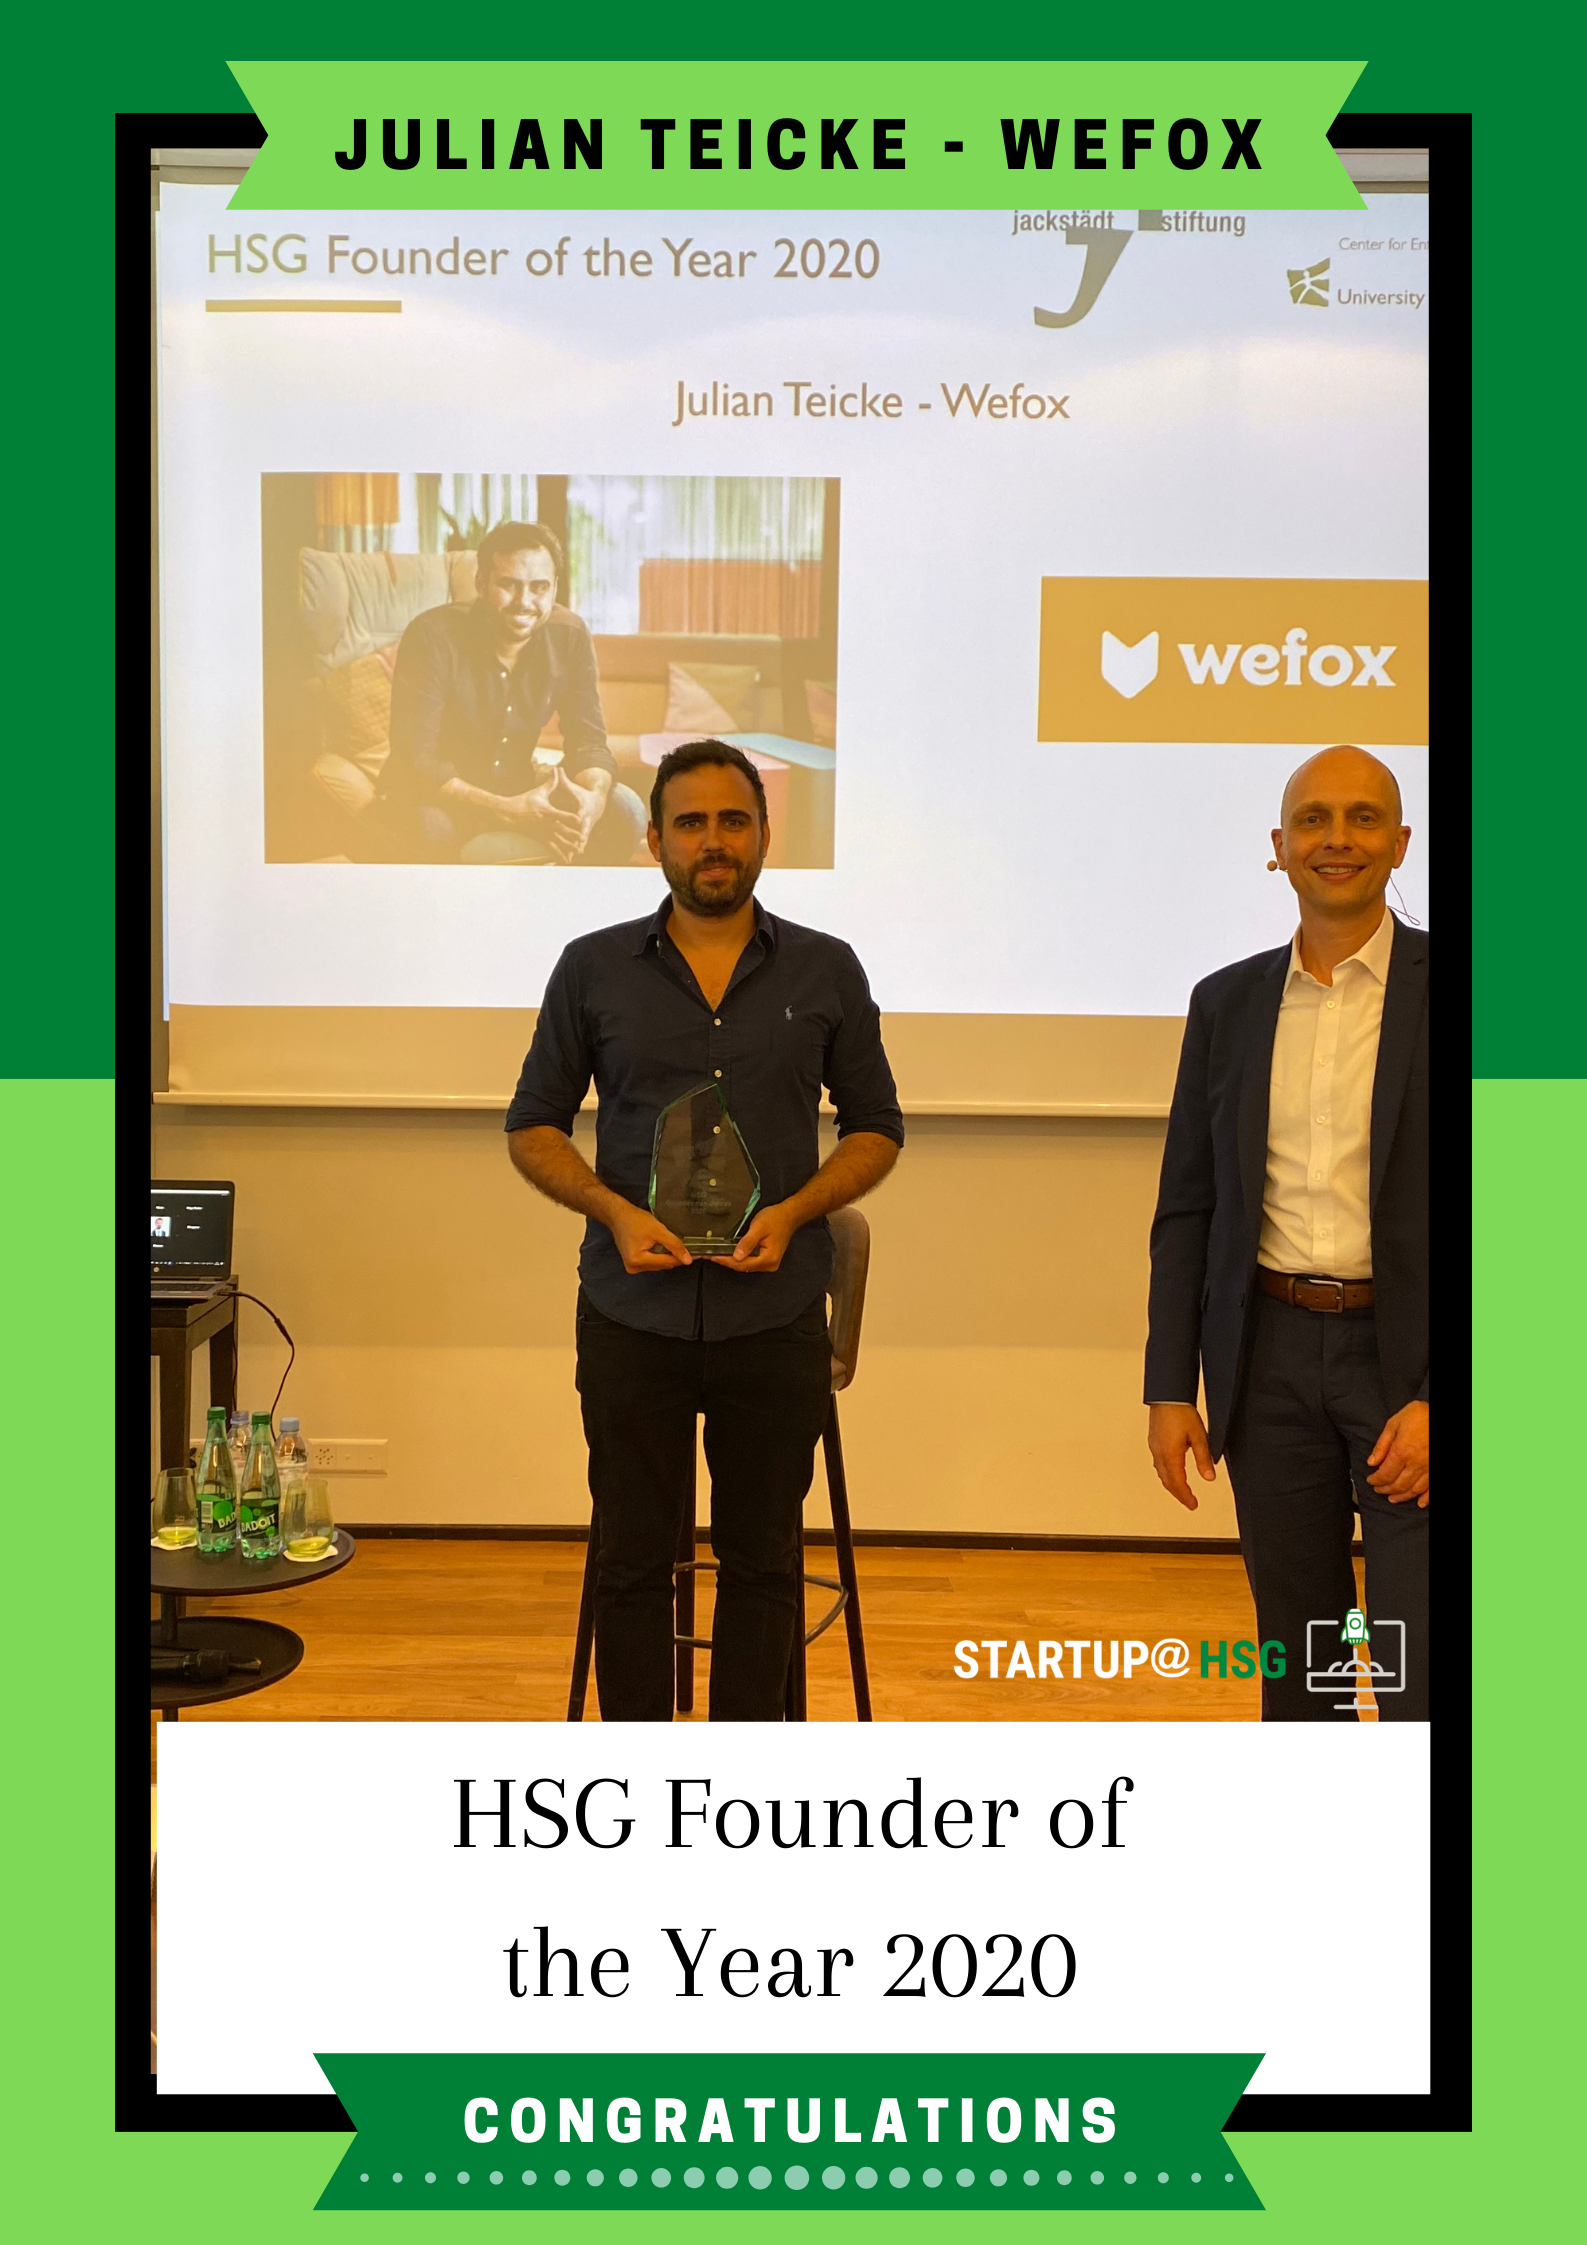 HSG Founder of the Year 2020 – Julian Teicke, Founder of Wefox